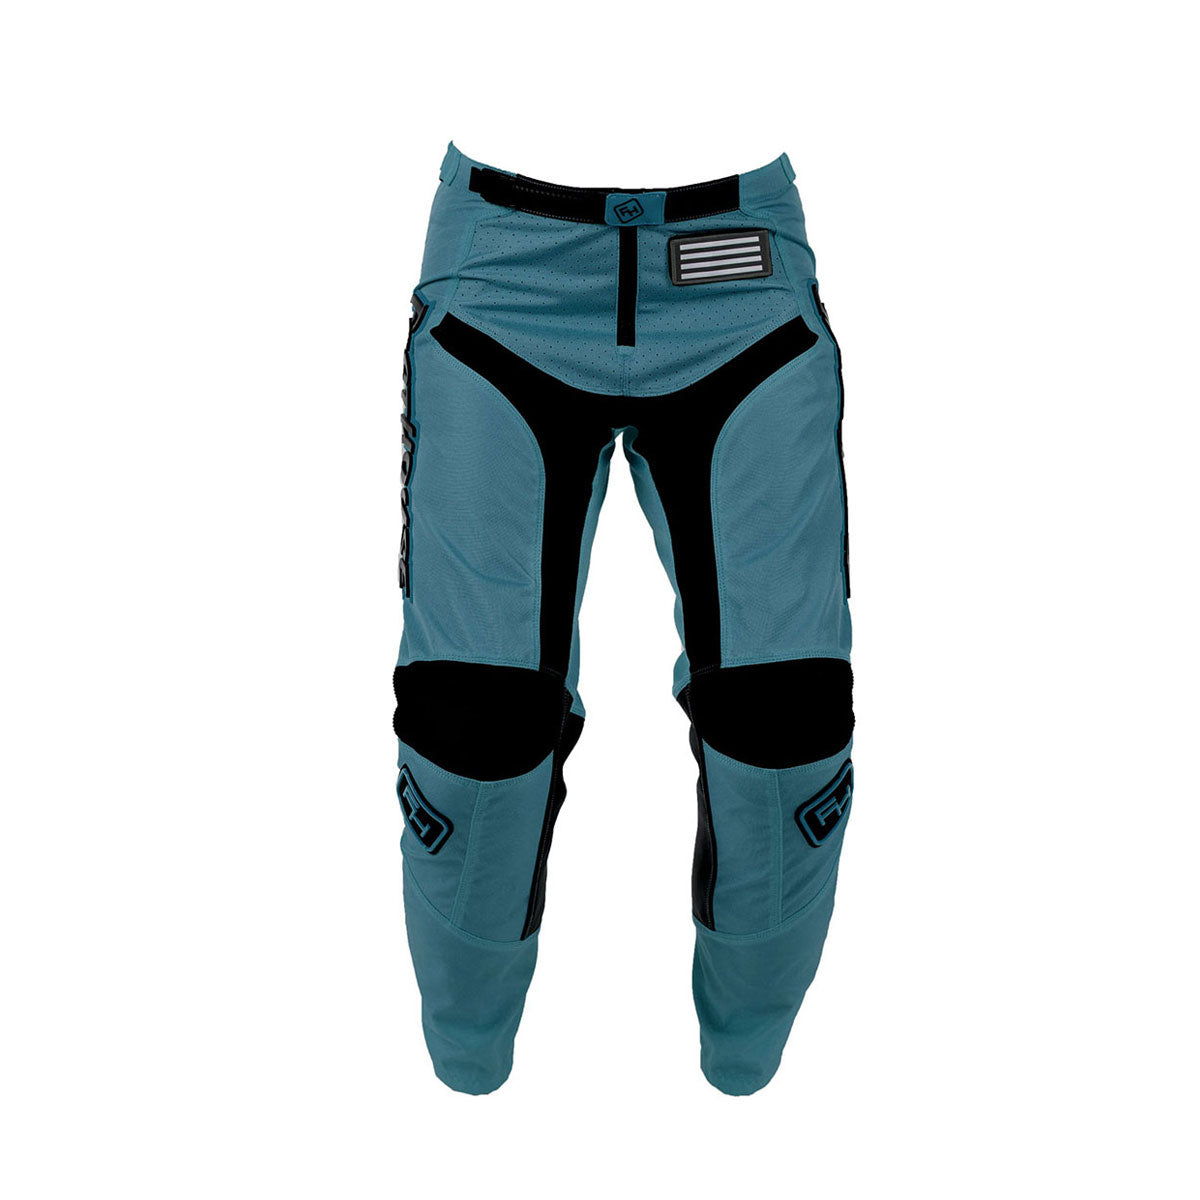 Grindhouse Youth Pant - Slate Blue